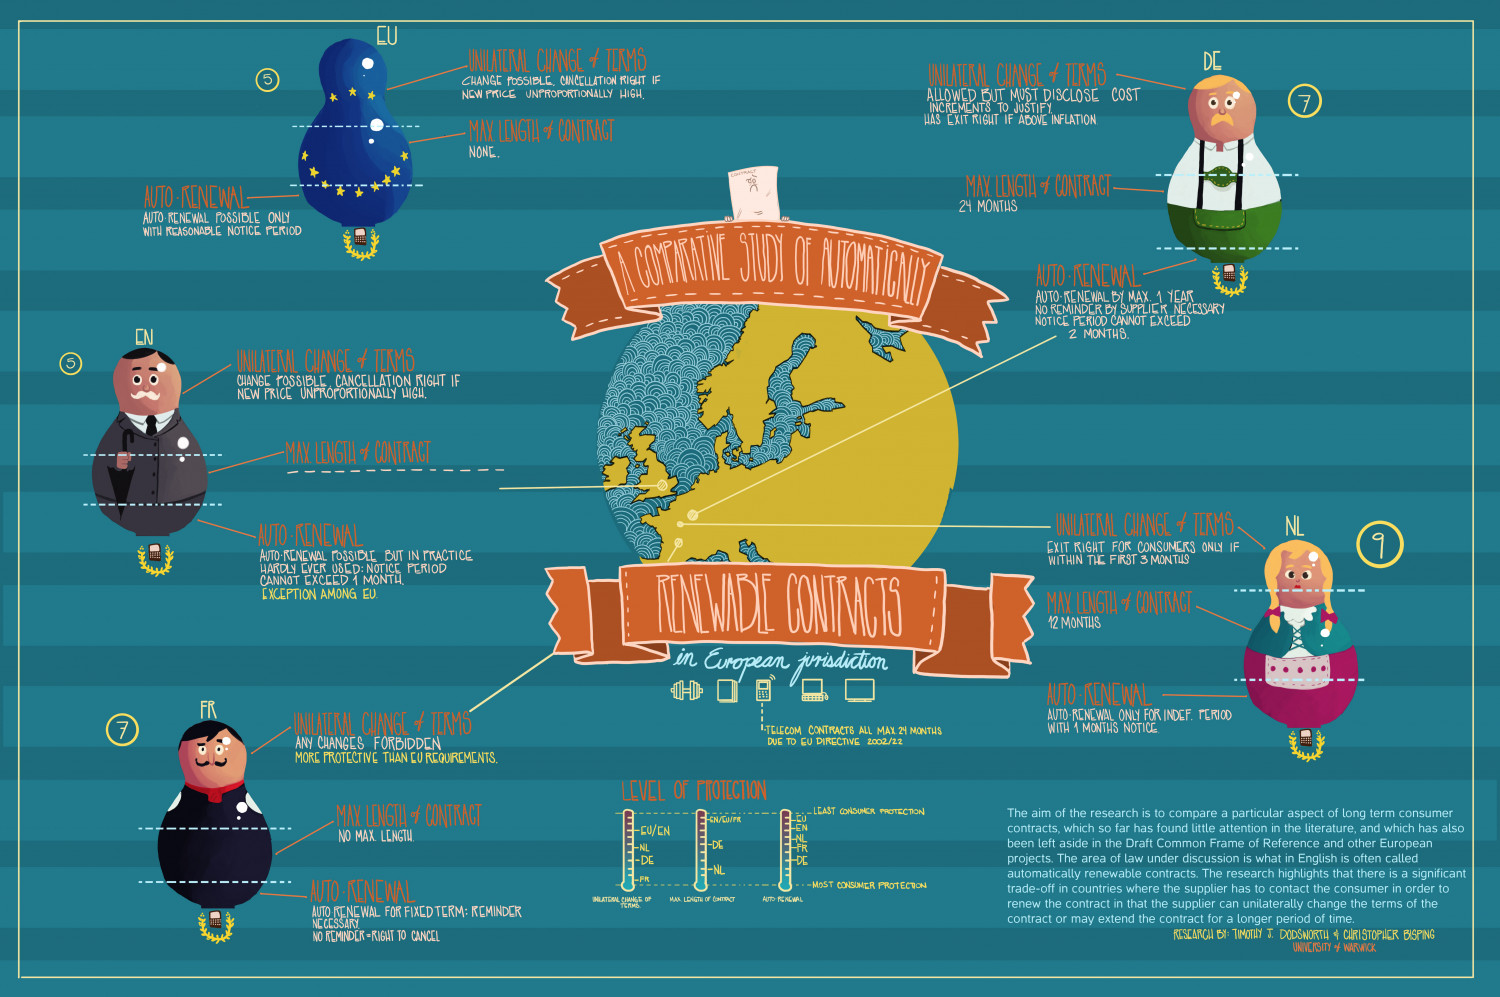 Contracts in the EU Infographic